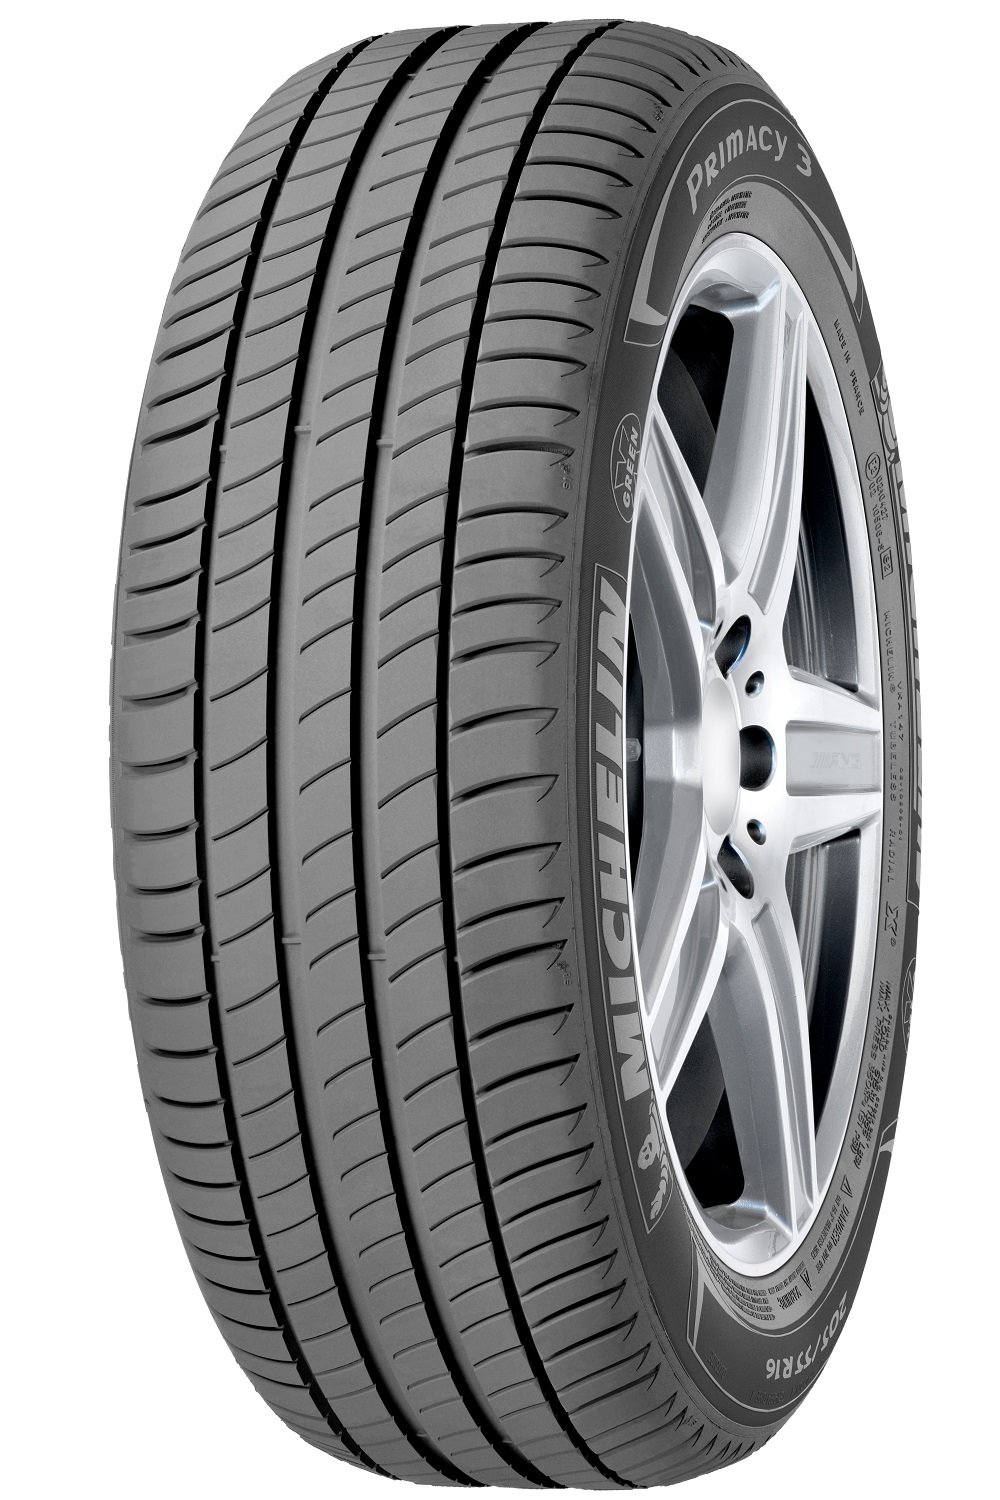 neumatico michelin primacy 3 225 45 17 91 v